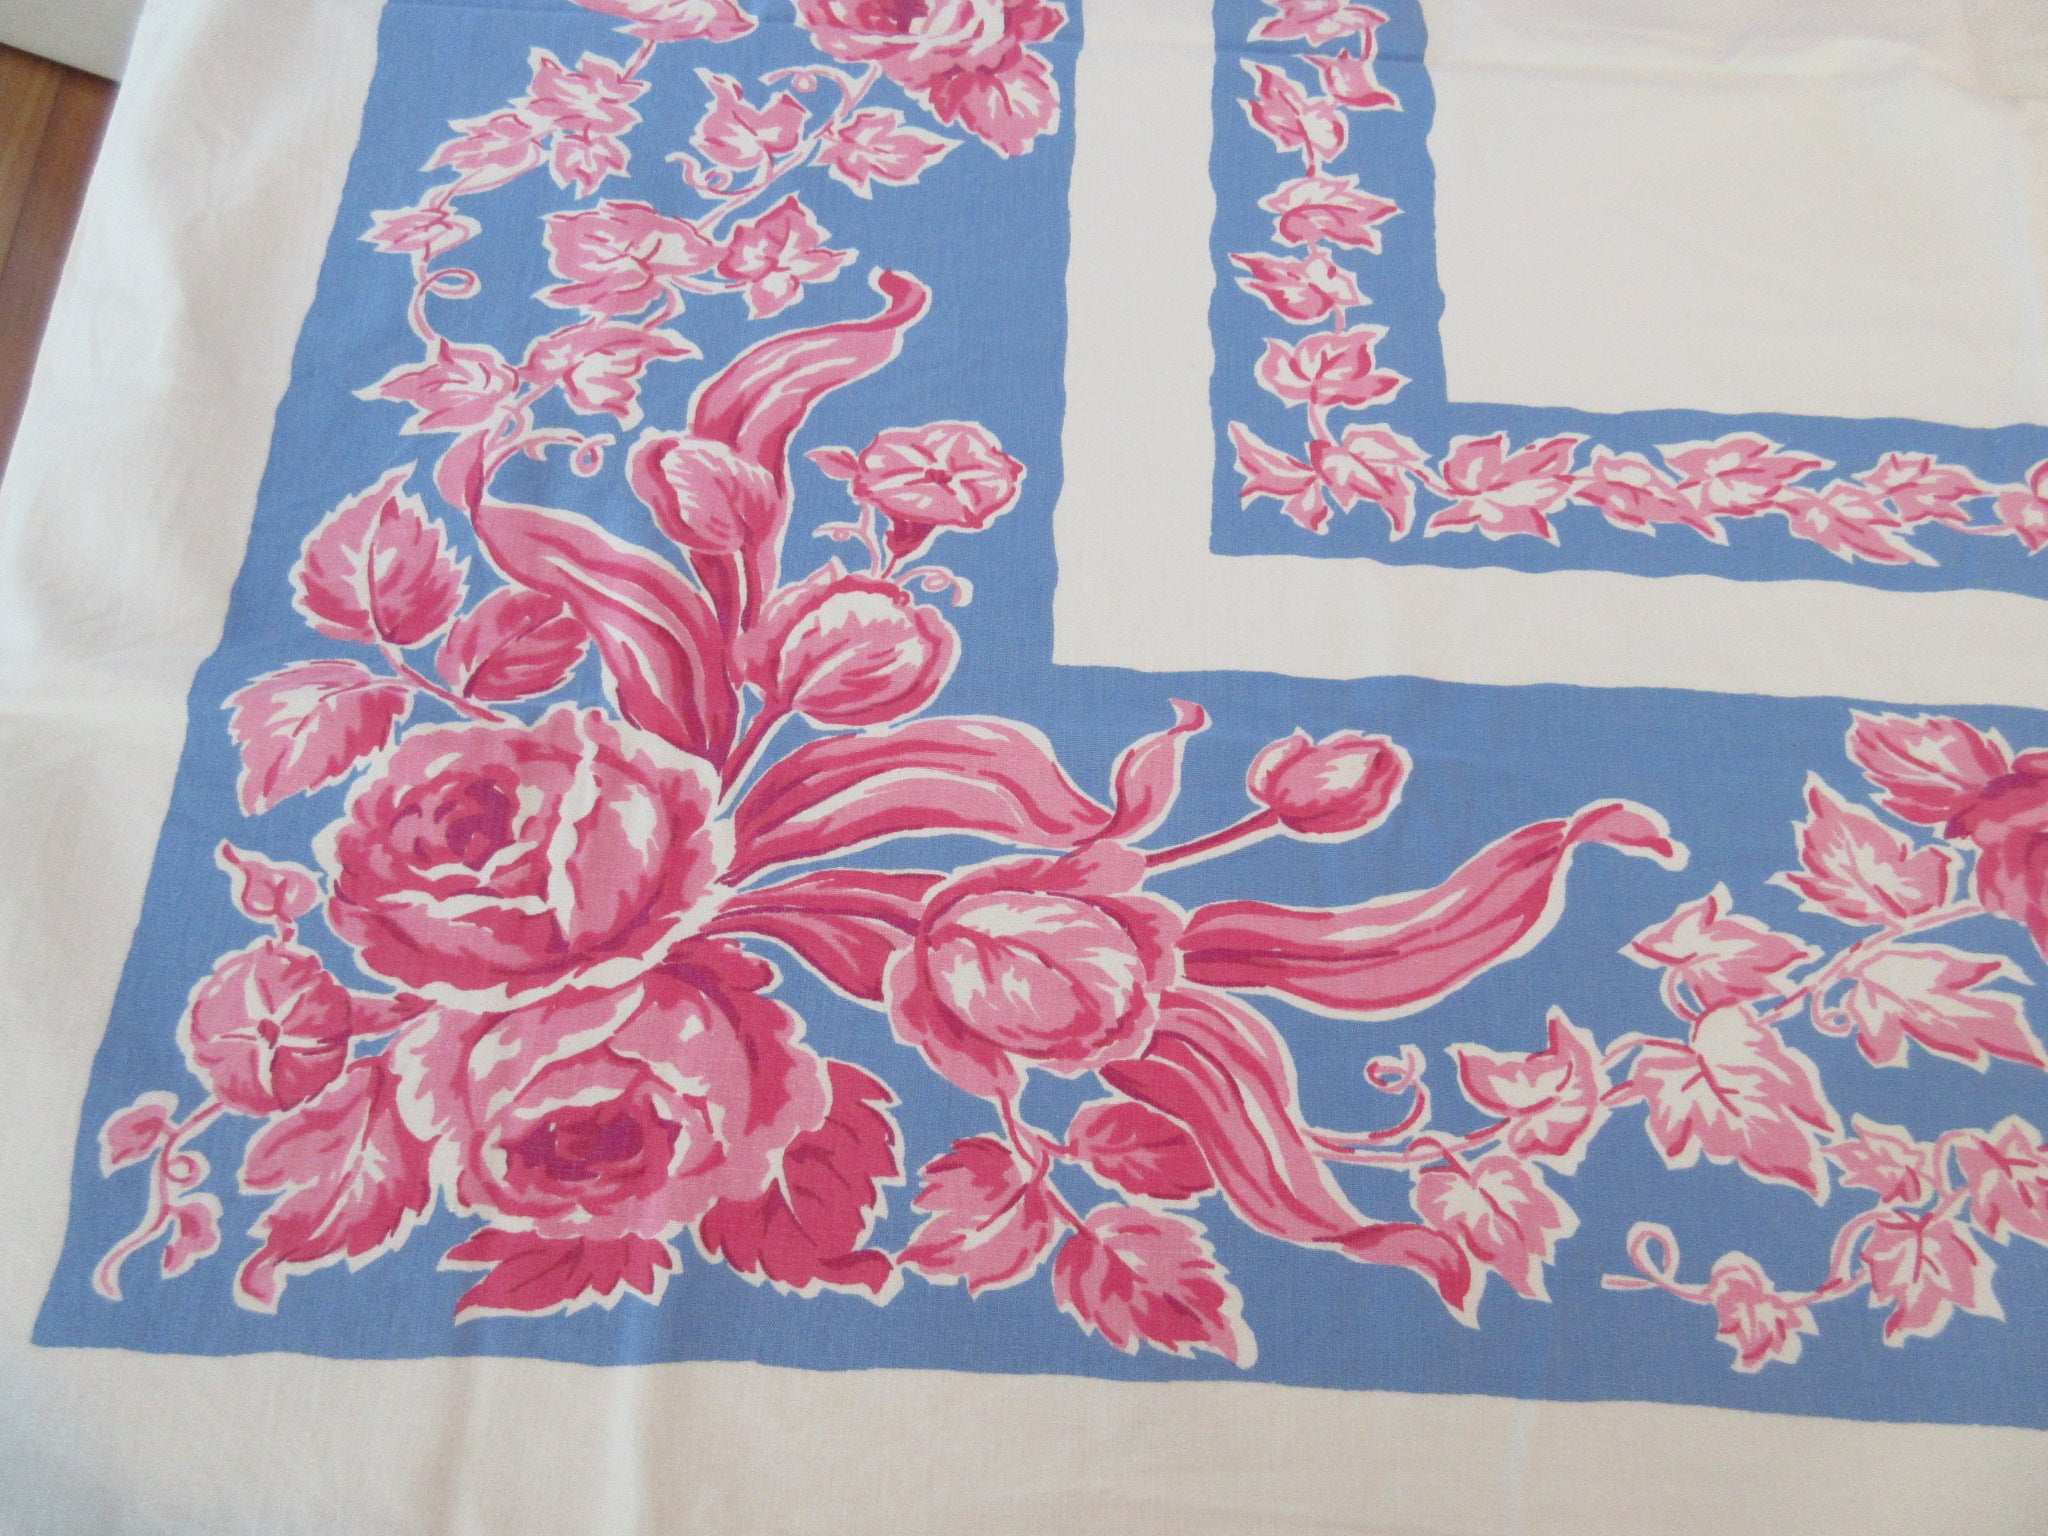 Pink Tulips Roses on Blue Cutter? Floral Vintage Printed Tablecloth (52 X 42)